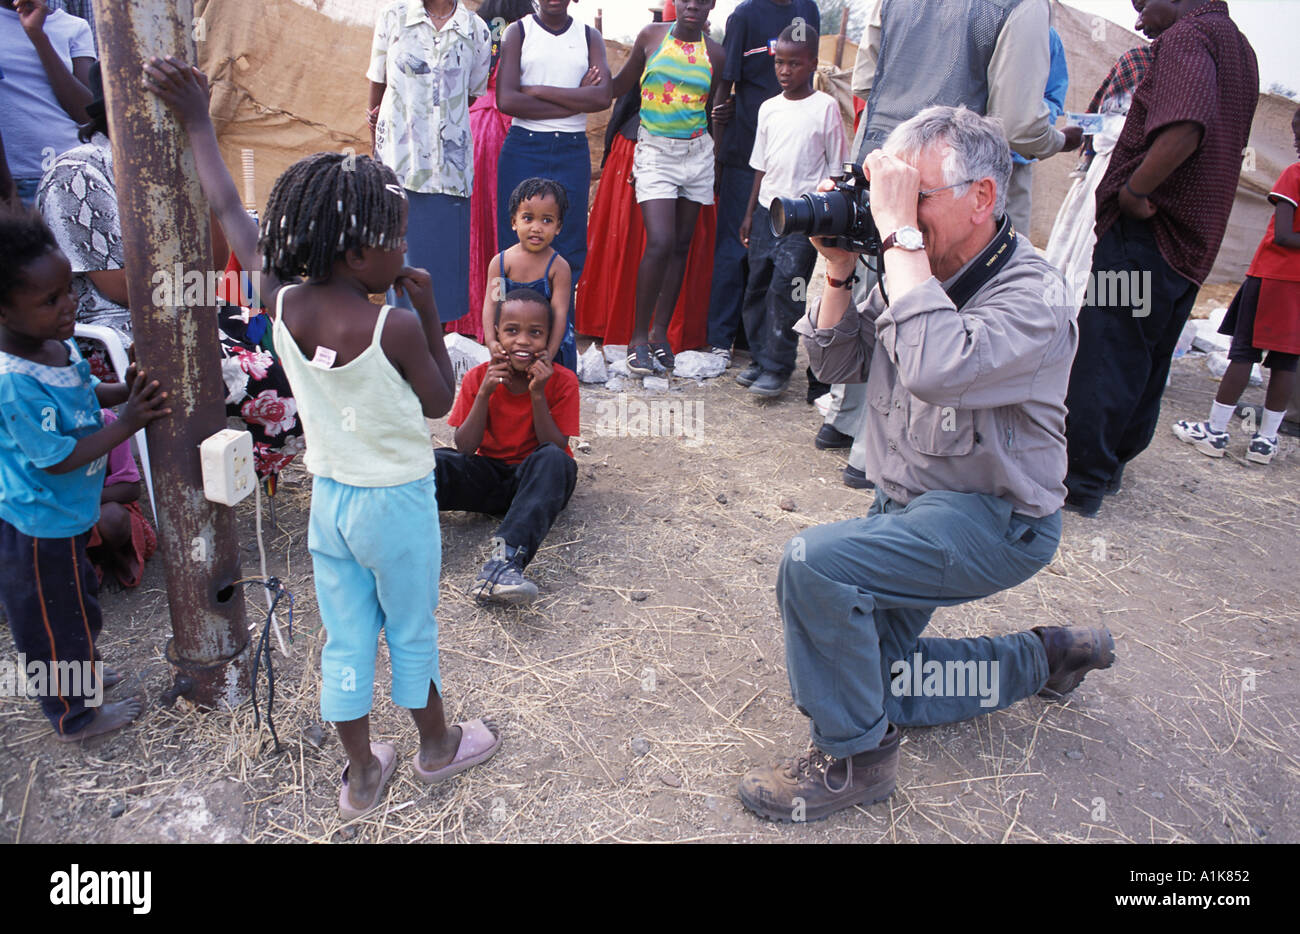 Herero girl being photographed by a professional photographer with digital camera at MaHerero Day festival Okahandja Namibia - Stock Image